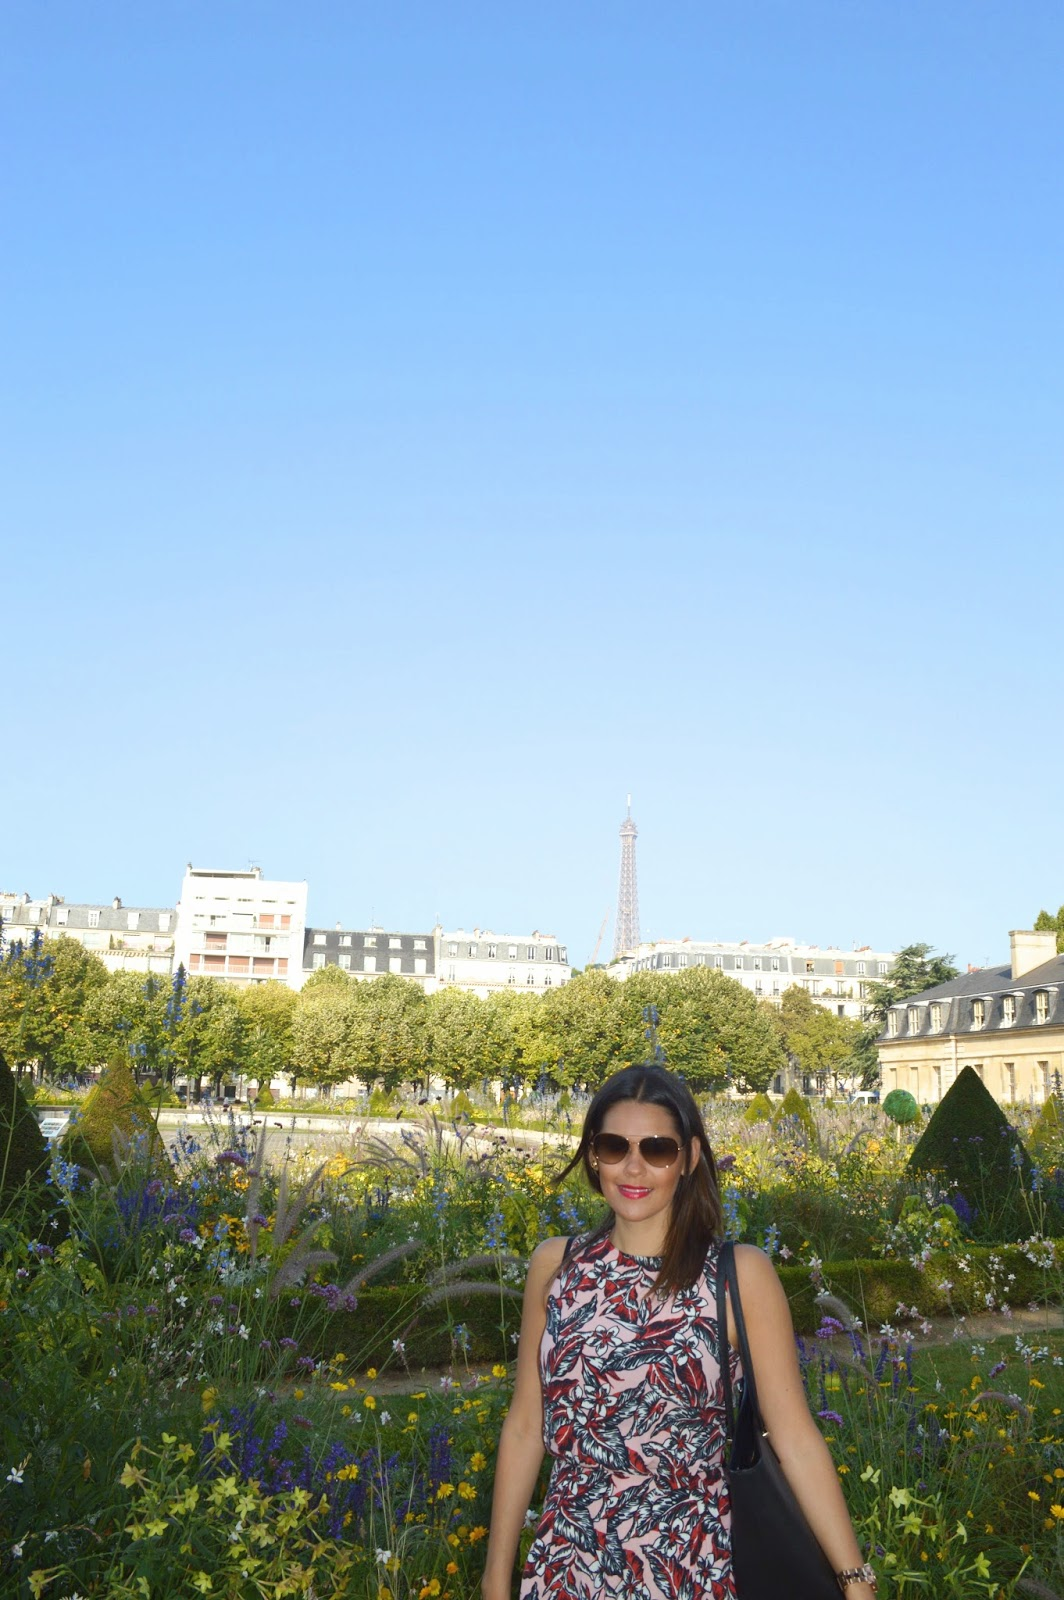 Marifer at the garden of Les Invalides